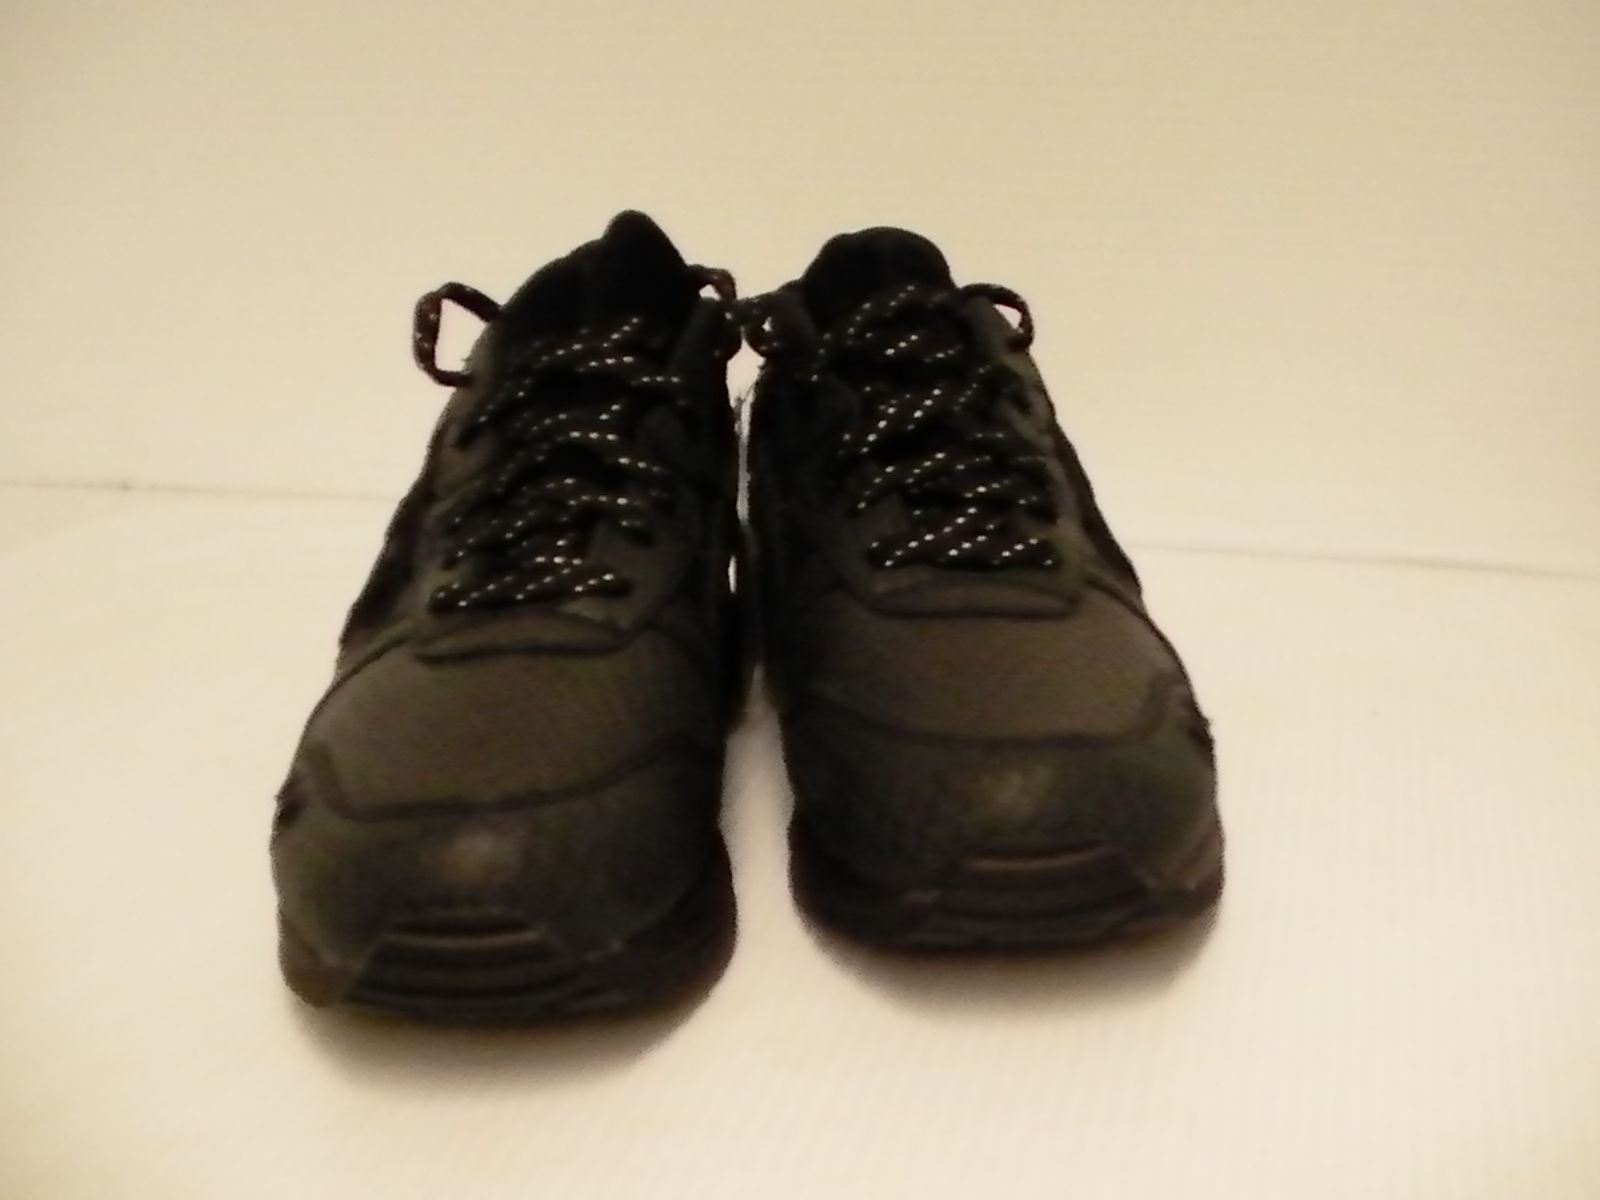 asics leather trainers for men size 9.5